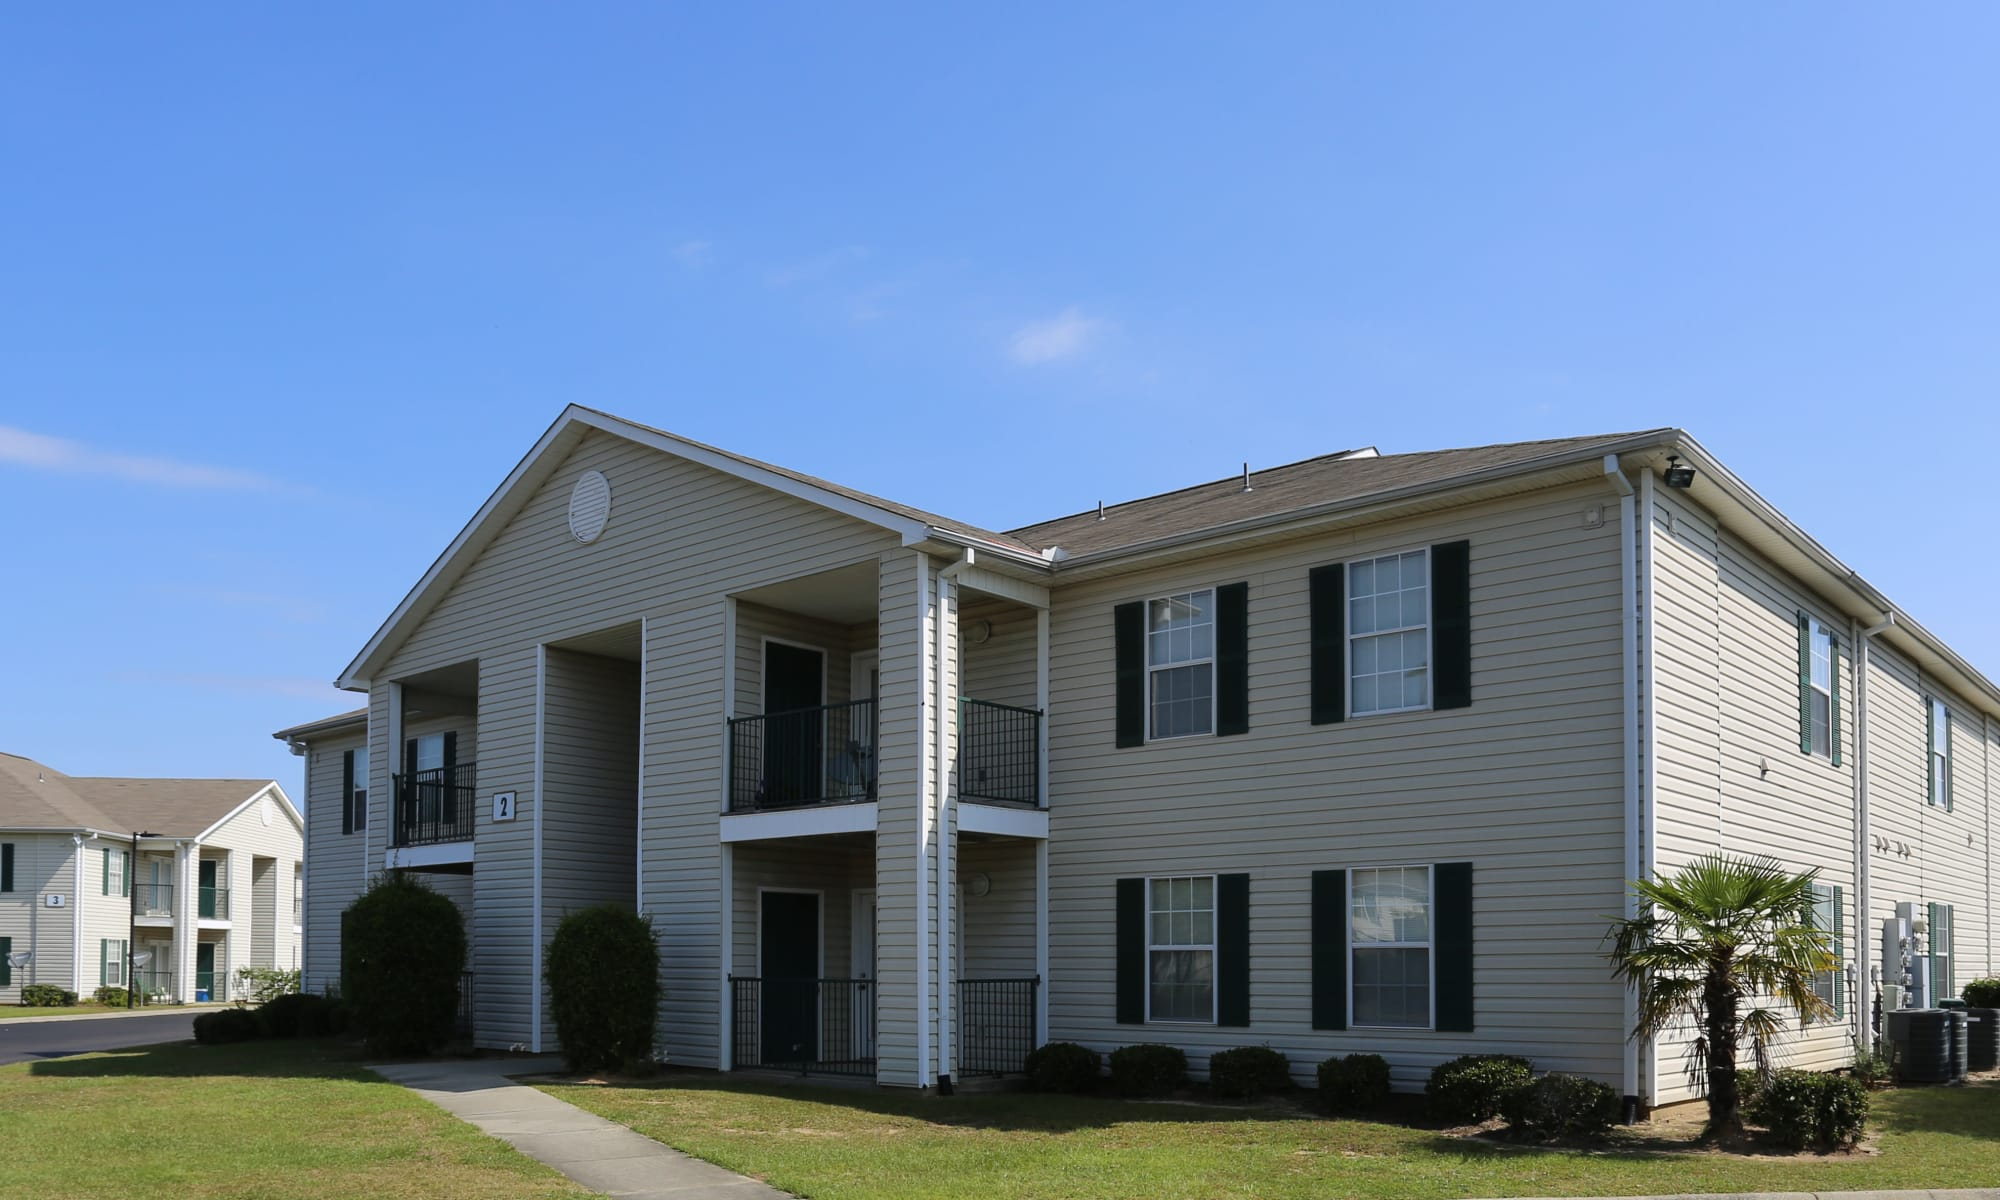 Beautifully landscaped apartments at Ashton Park Apartments in Gulfport, Mississippi